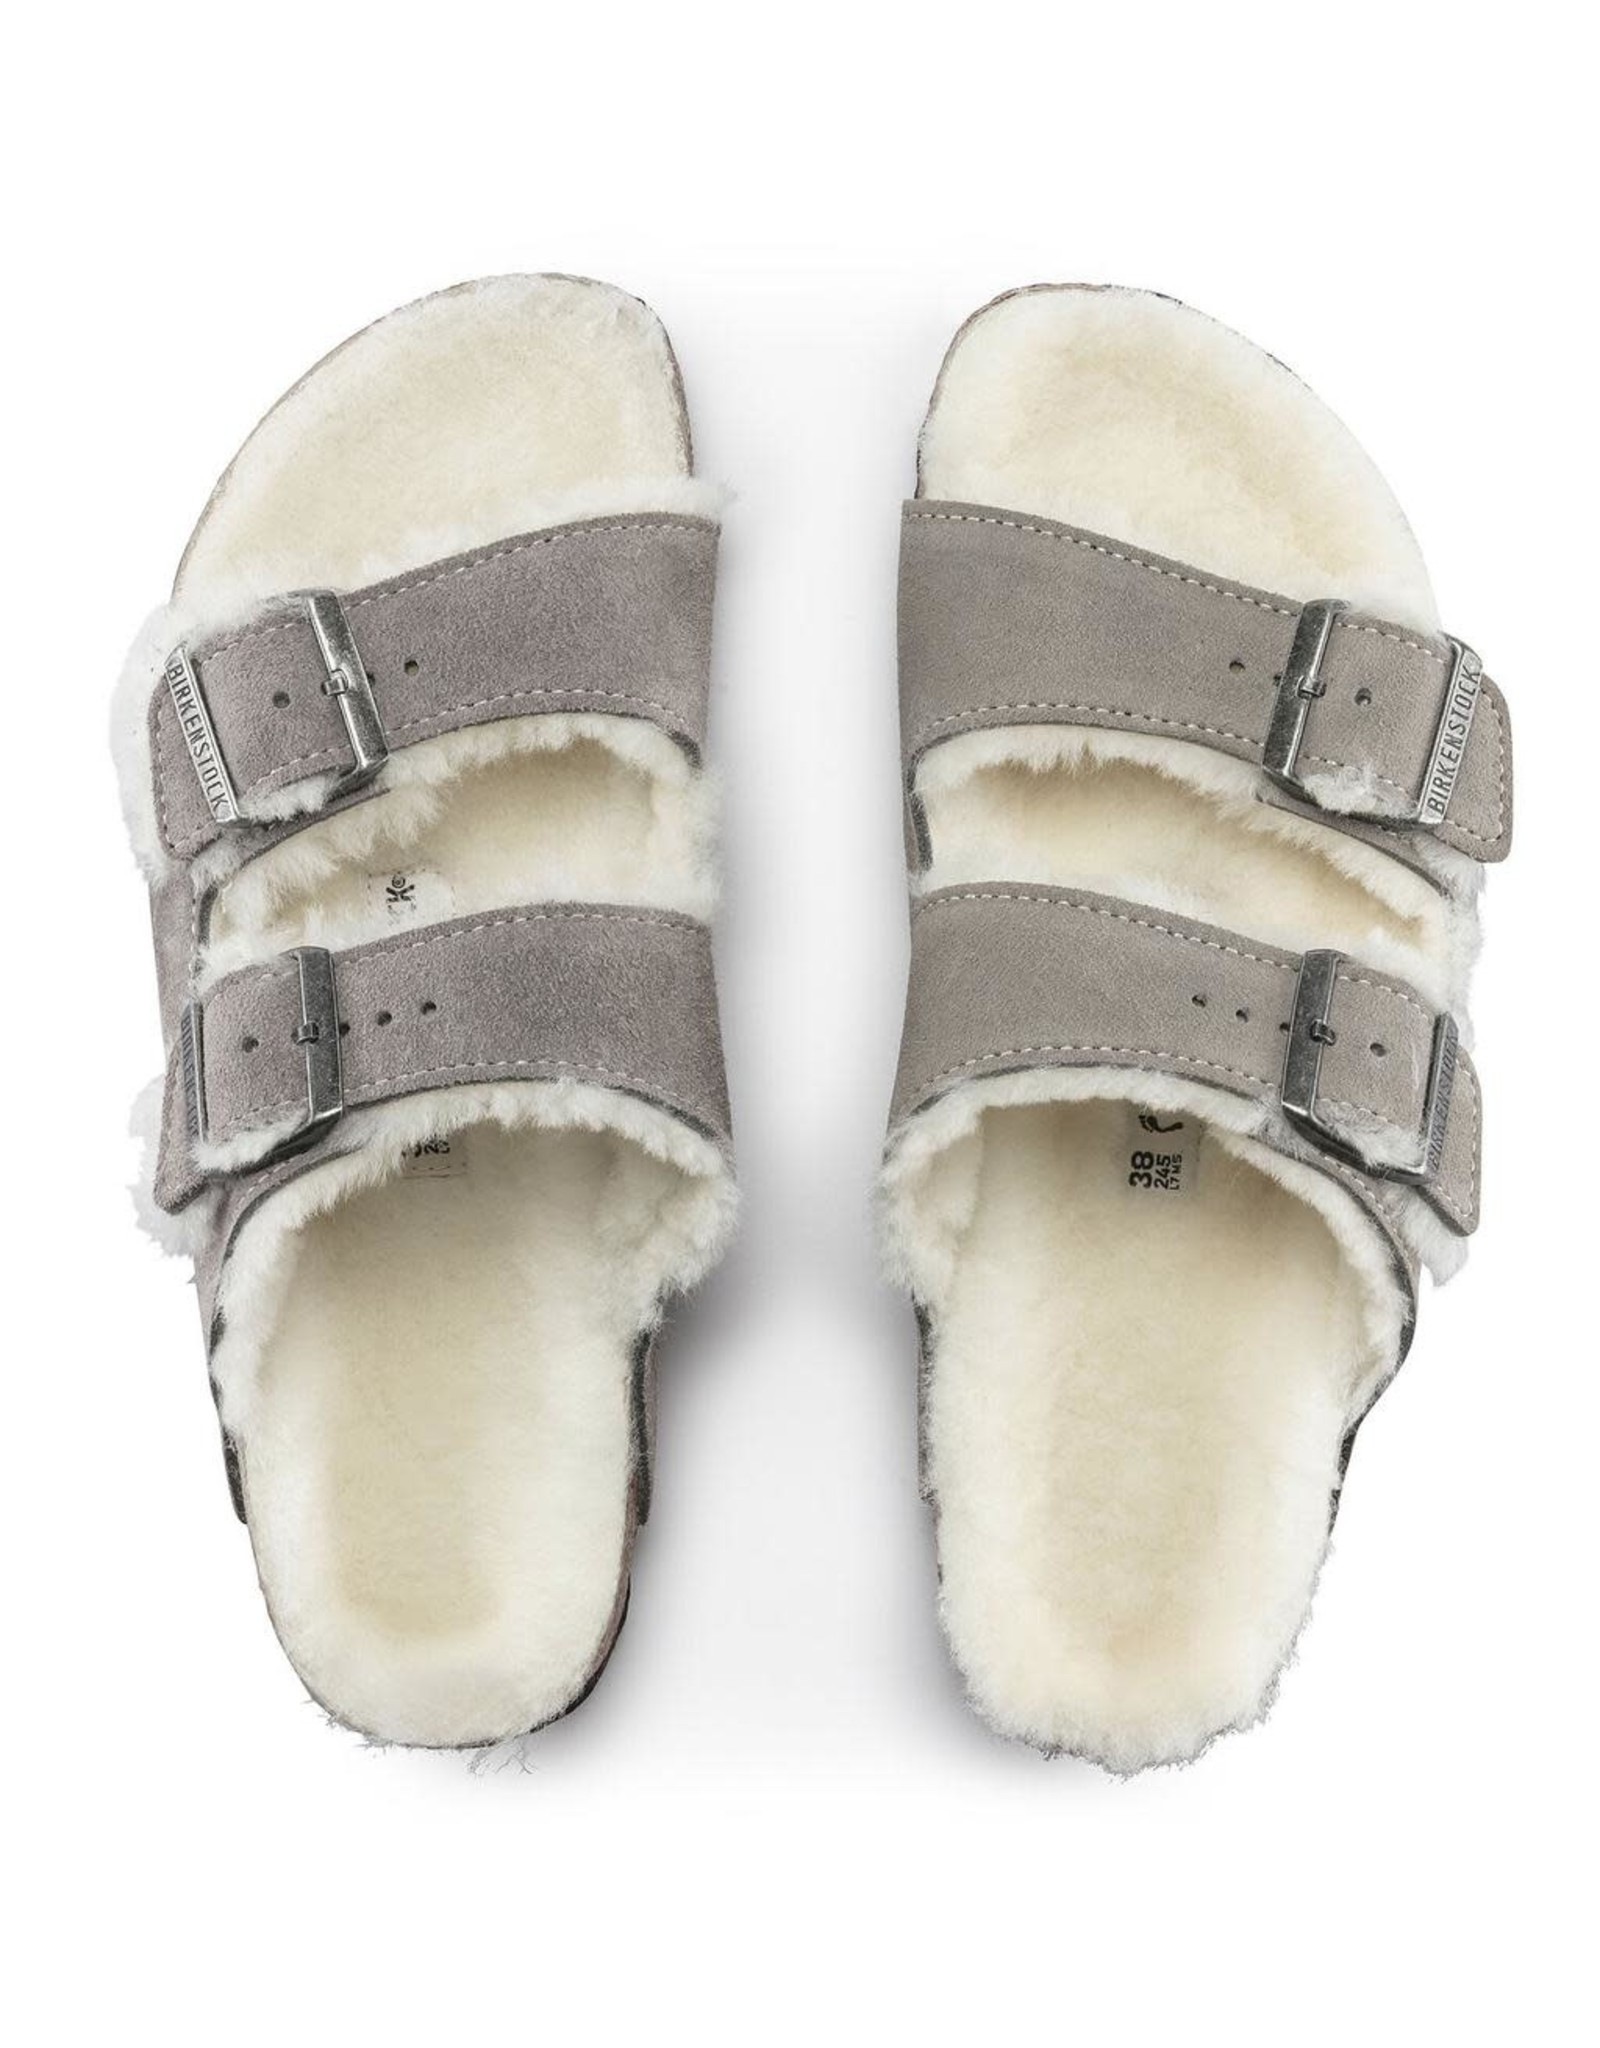 Birkenstock Arizona Suede Stone Coin with Shearling Fur Lining